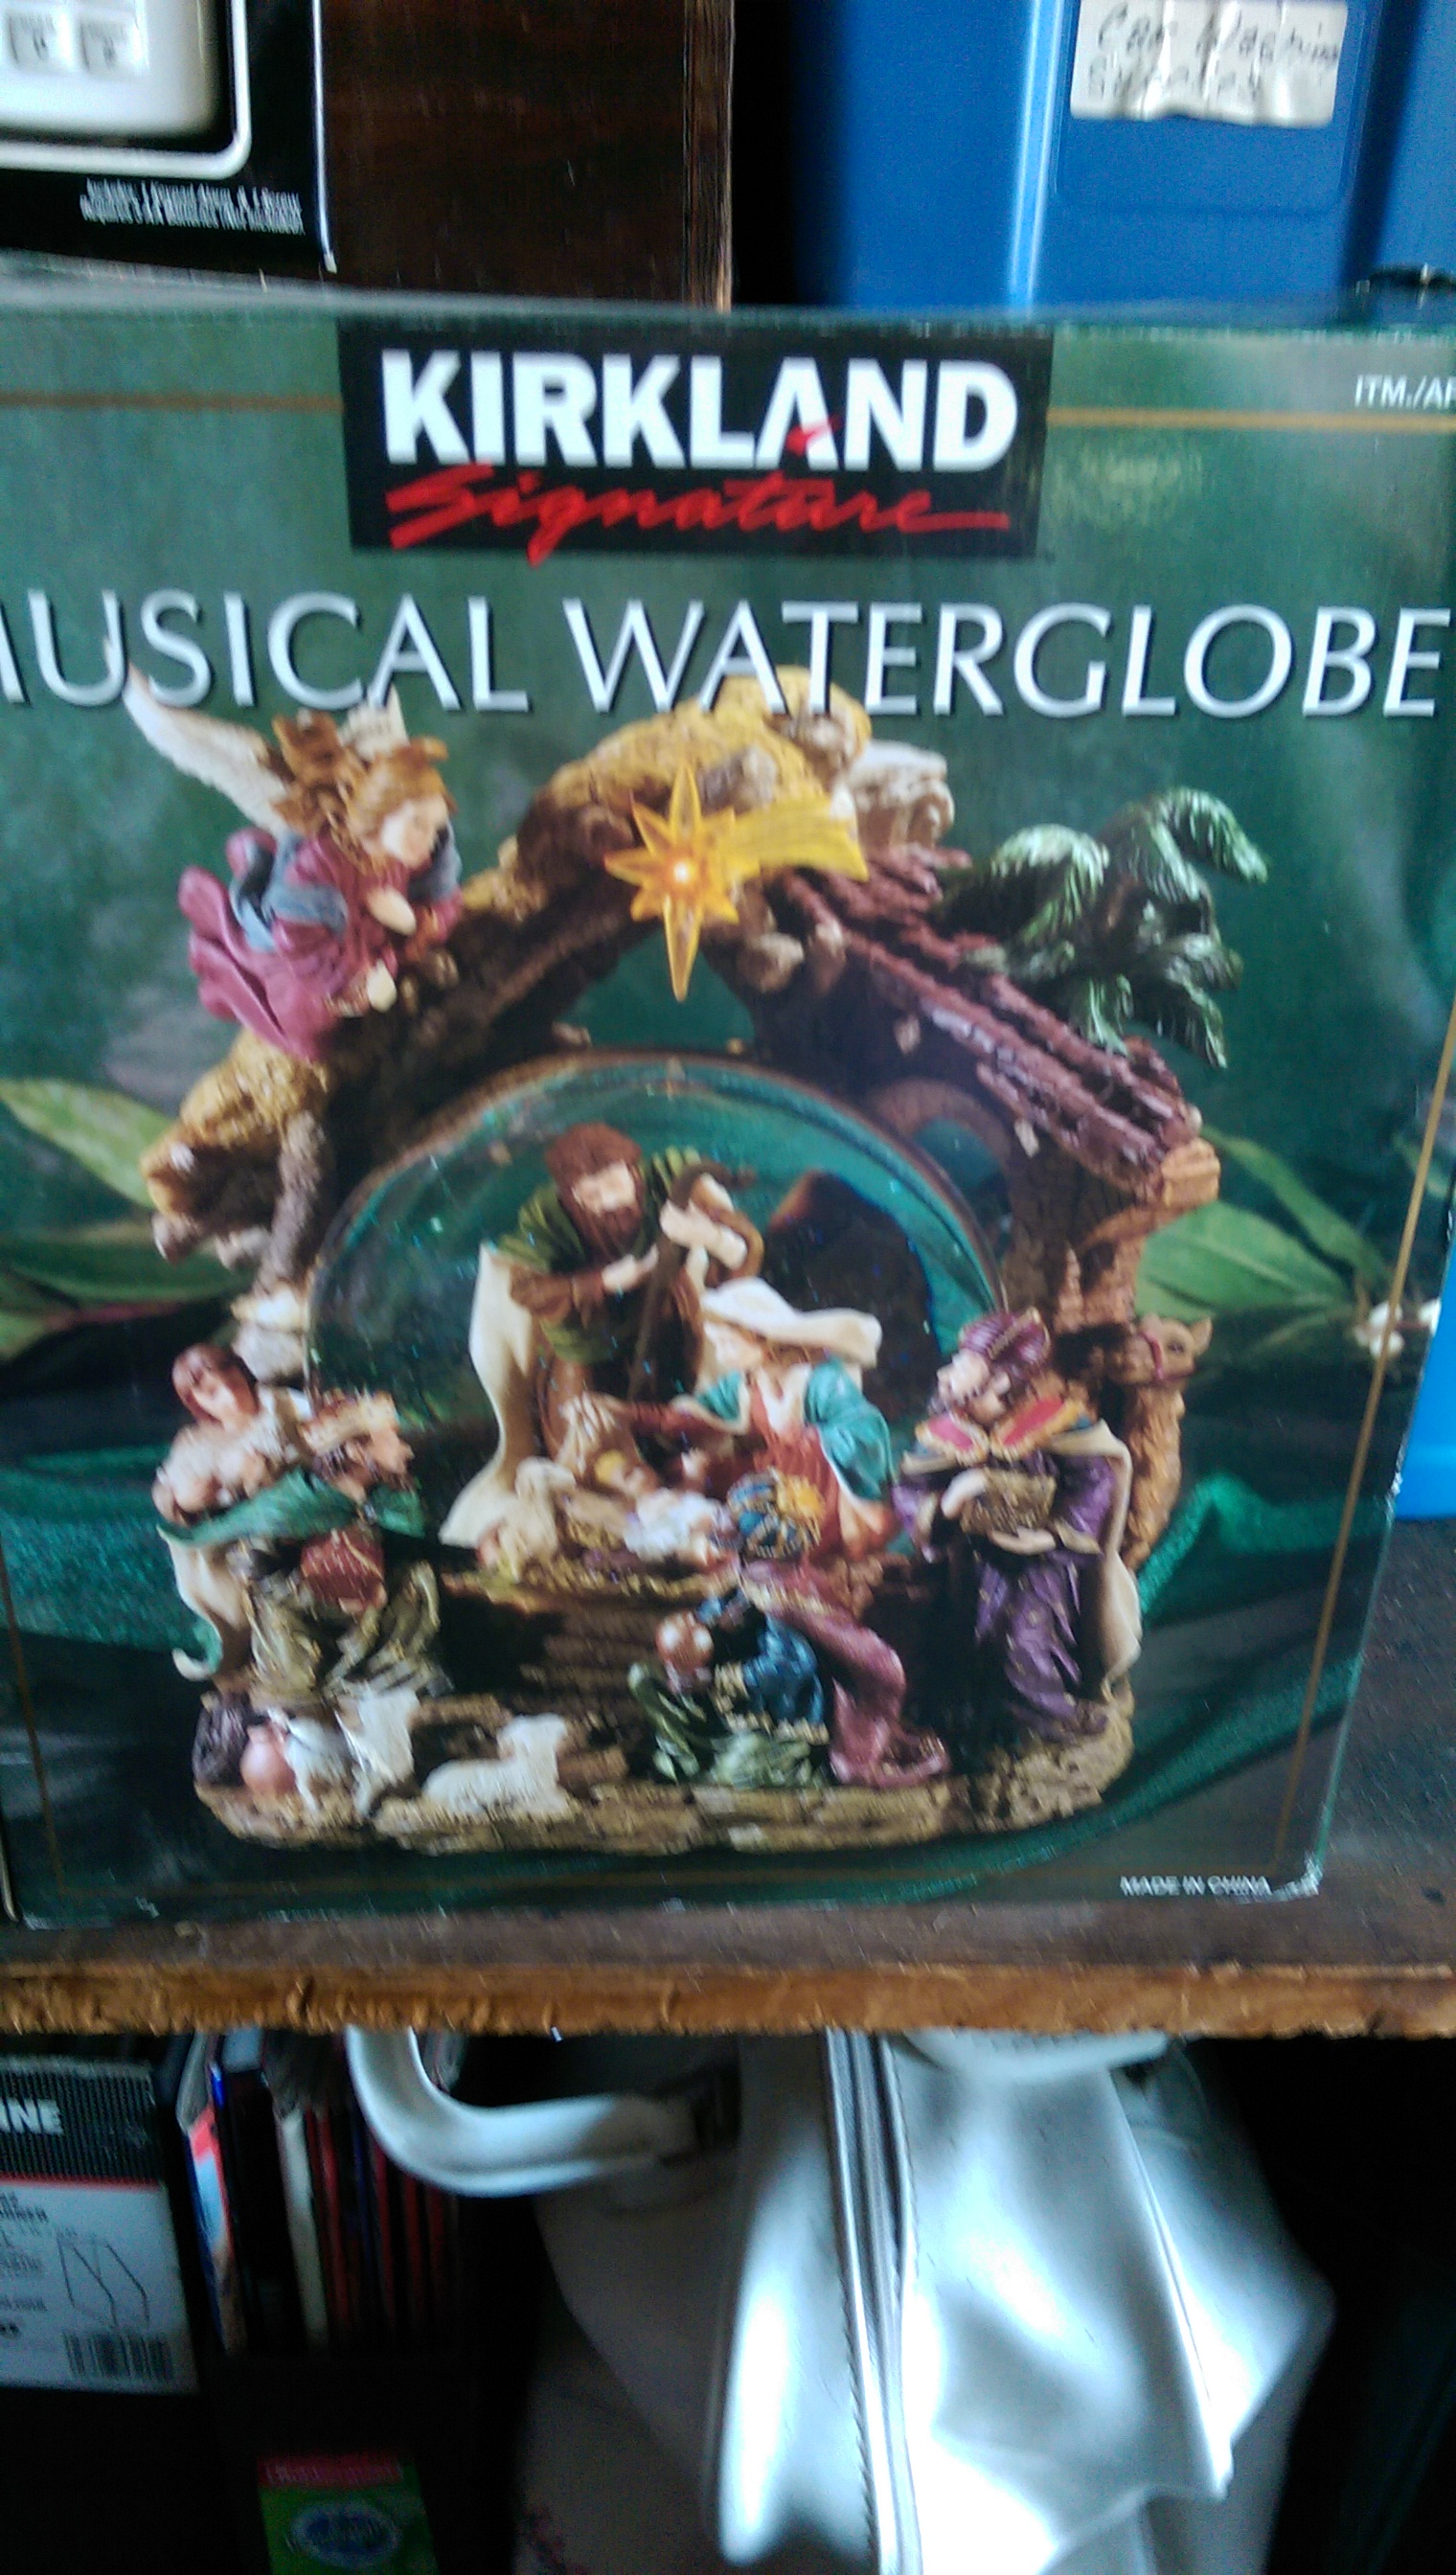 Kirkland Signature Musical Waterglobe Nativity Snowglobe Usa